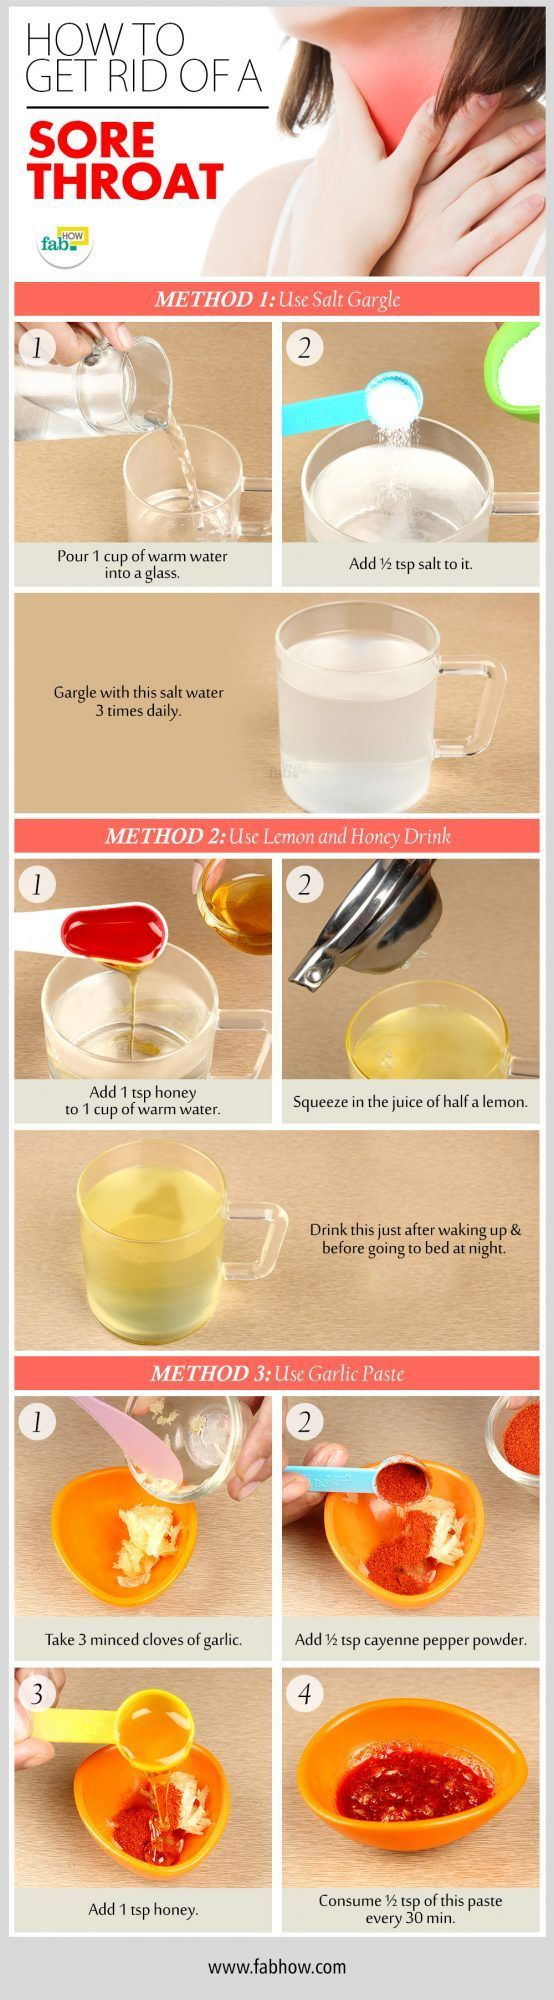 471a61016bb1e8997ca051694139f1d7 - How To Cure Sore Throat Before It Gets Worse